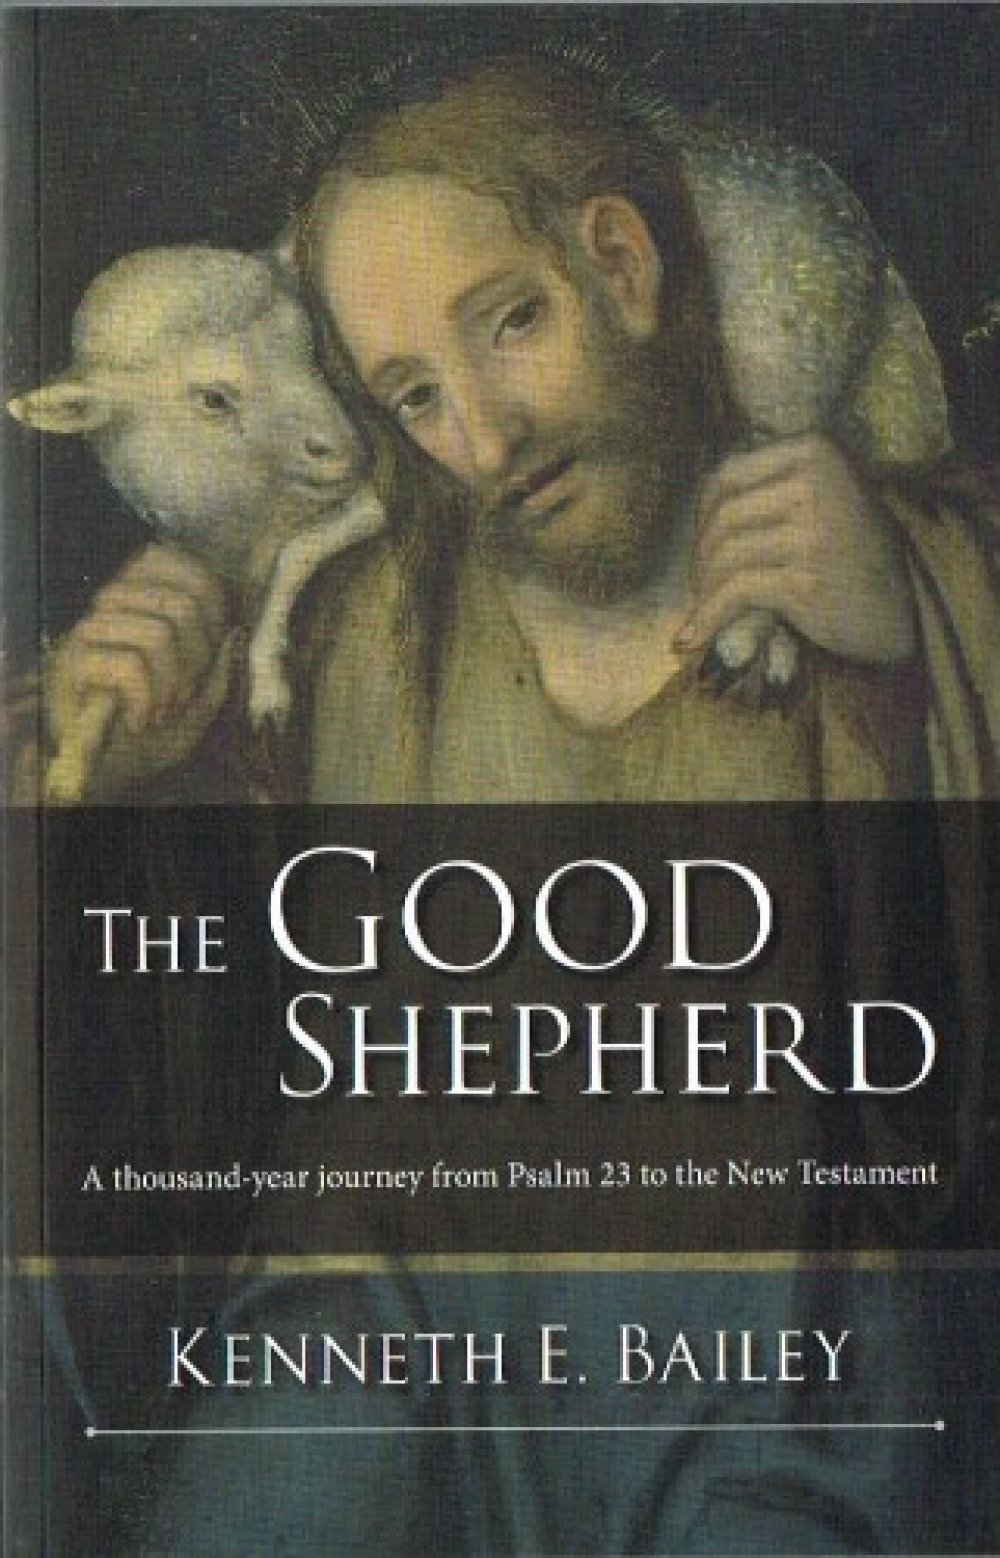 Review: The Good Shepherd